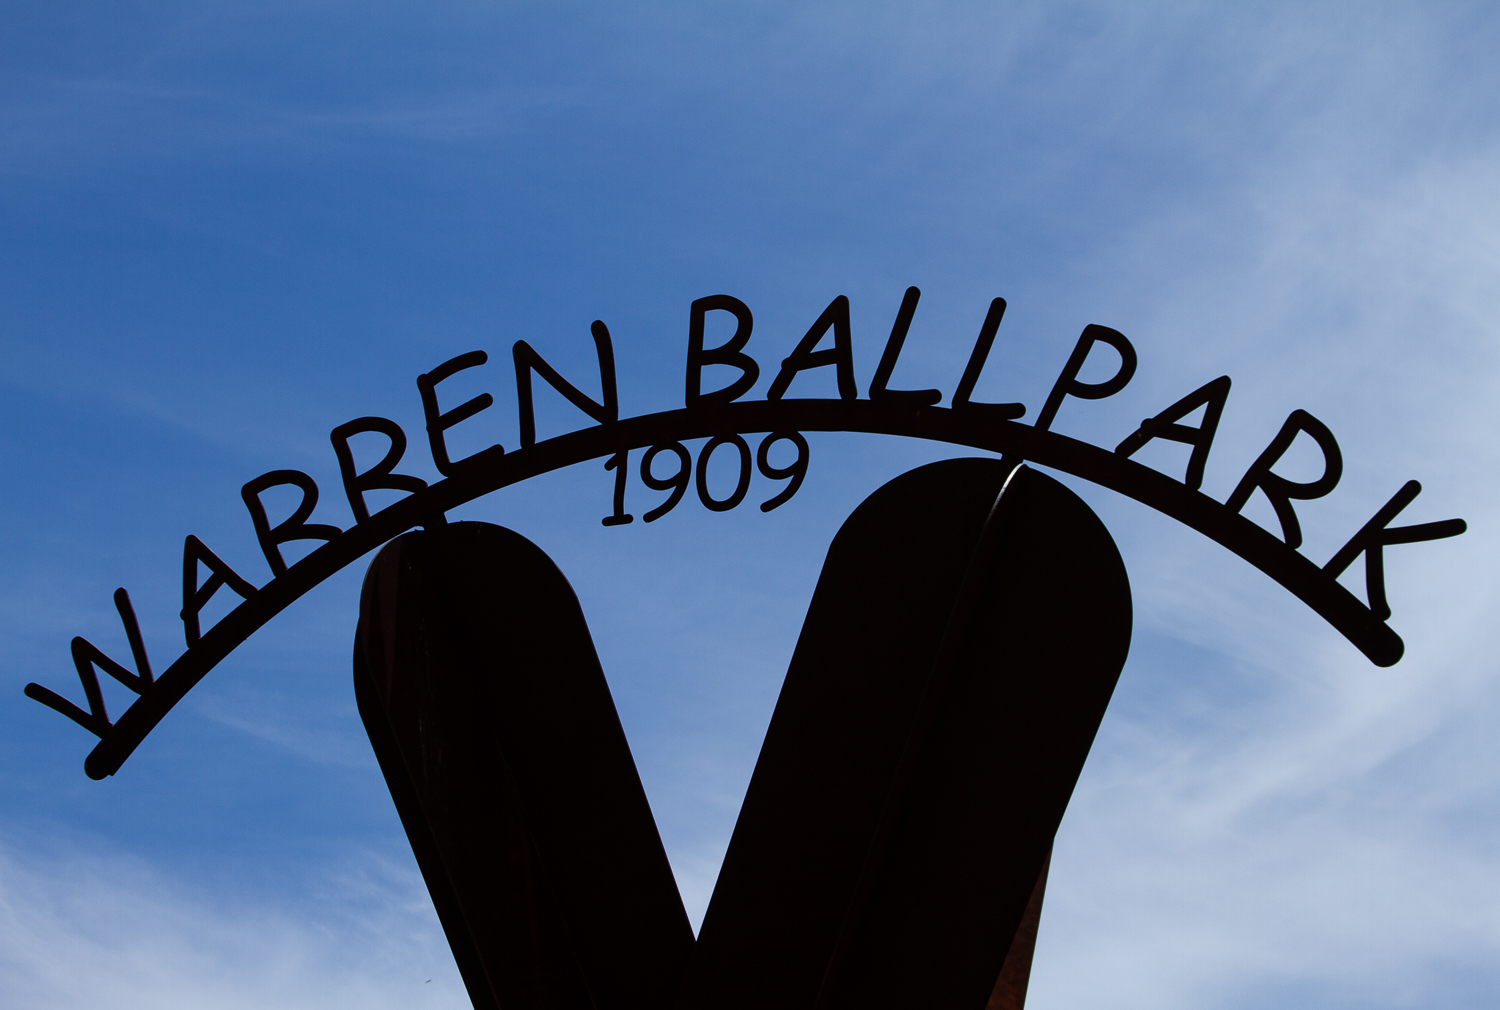 Historic Warren Ballpark